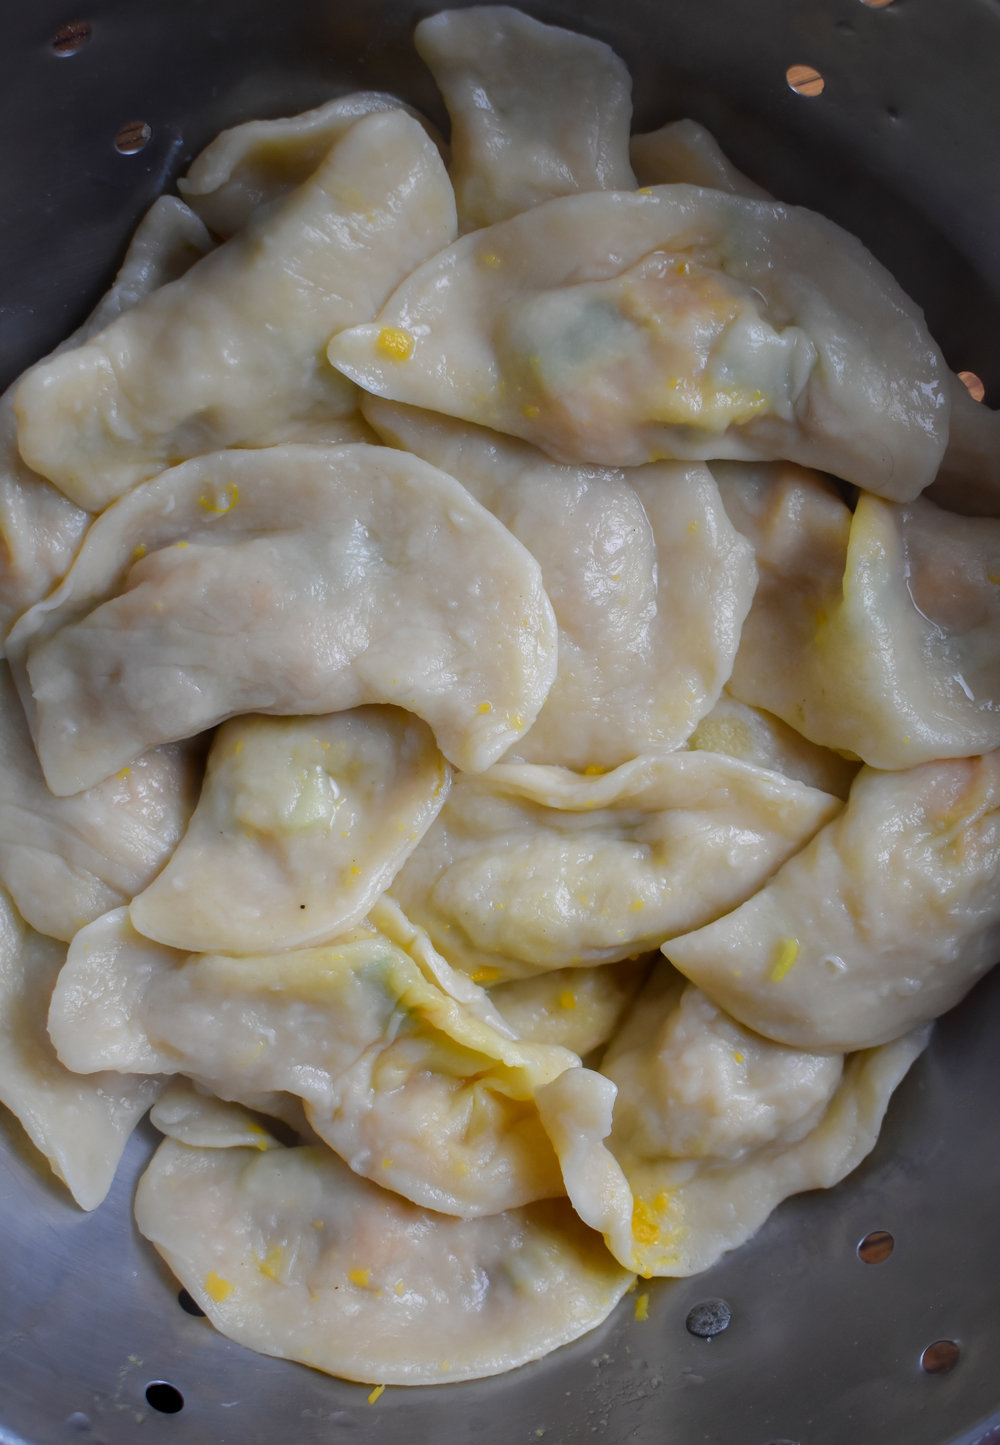 10. Add pierogis to a boiling pot of water and cook for 4-5 minutes until they boil to the top. Eat them soft or you can add to a pan with 1 tbl of vegan butter and cook 7-8 at a time.